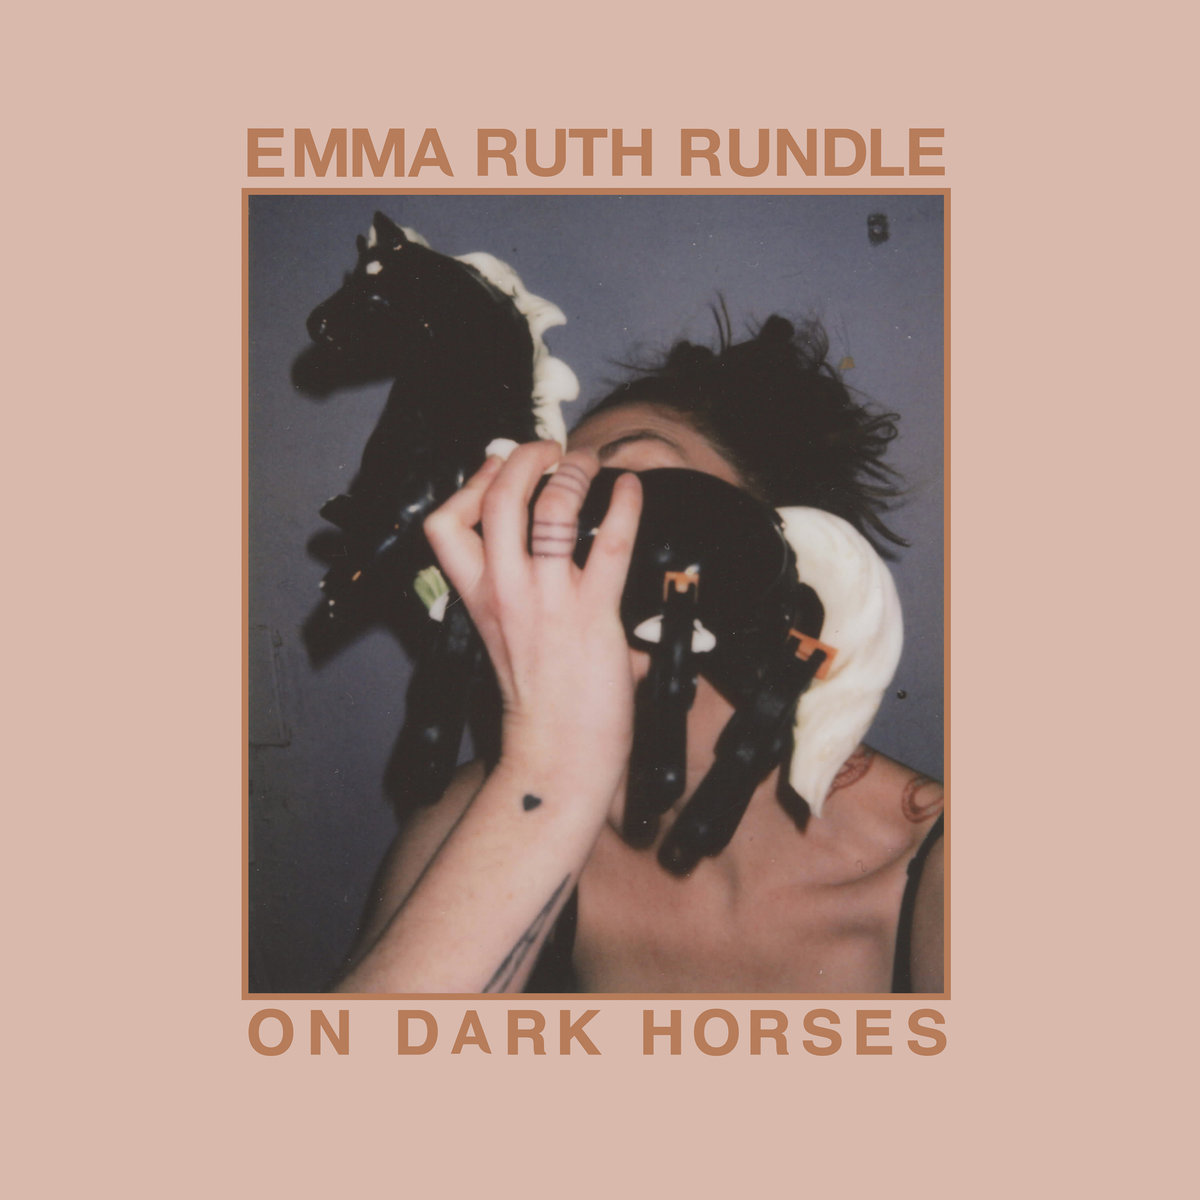 Emma Ruth Rundle On Dark Horses review